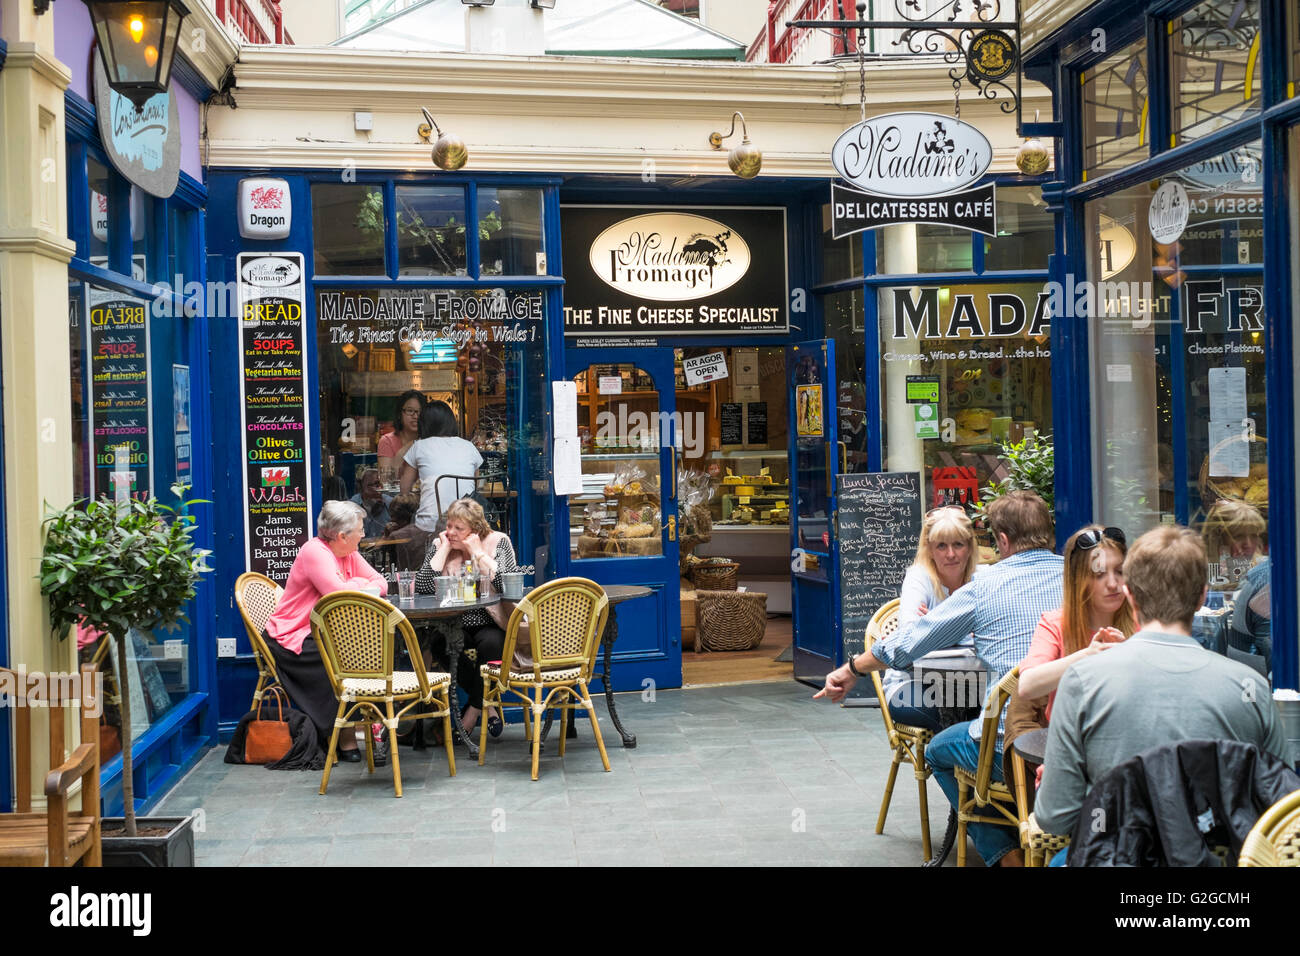 Cardiff the capital city of Wales Great Britain UK Madame Fromage Castle Arcade - Stock Image